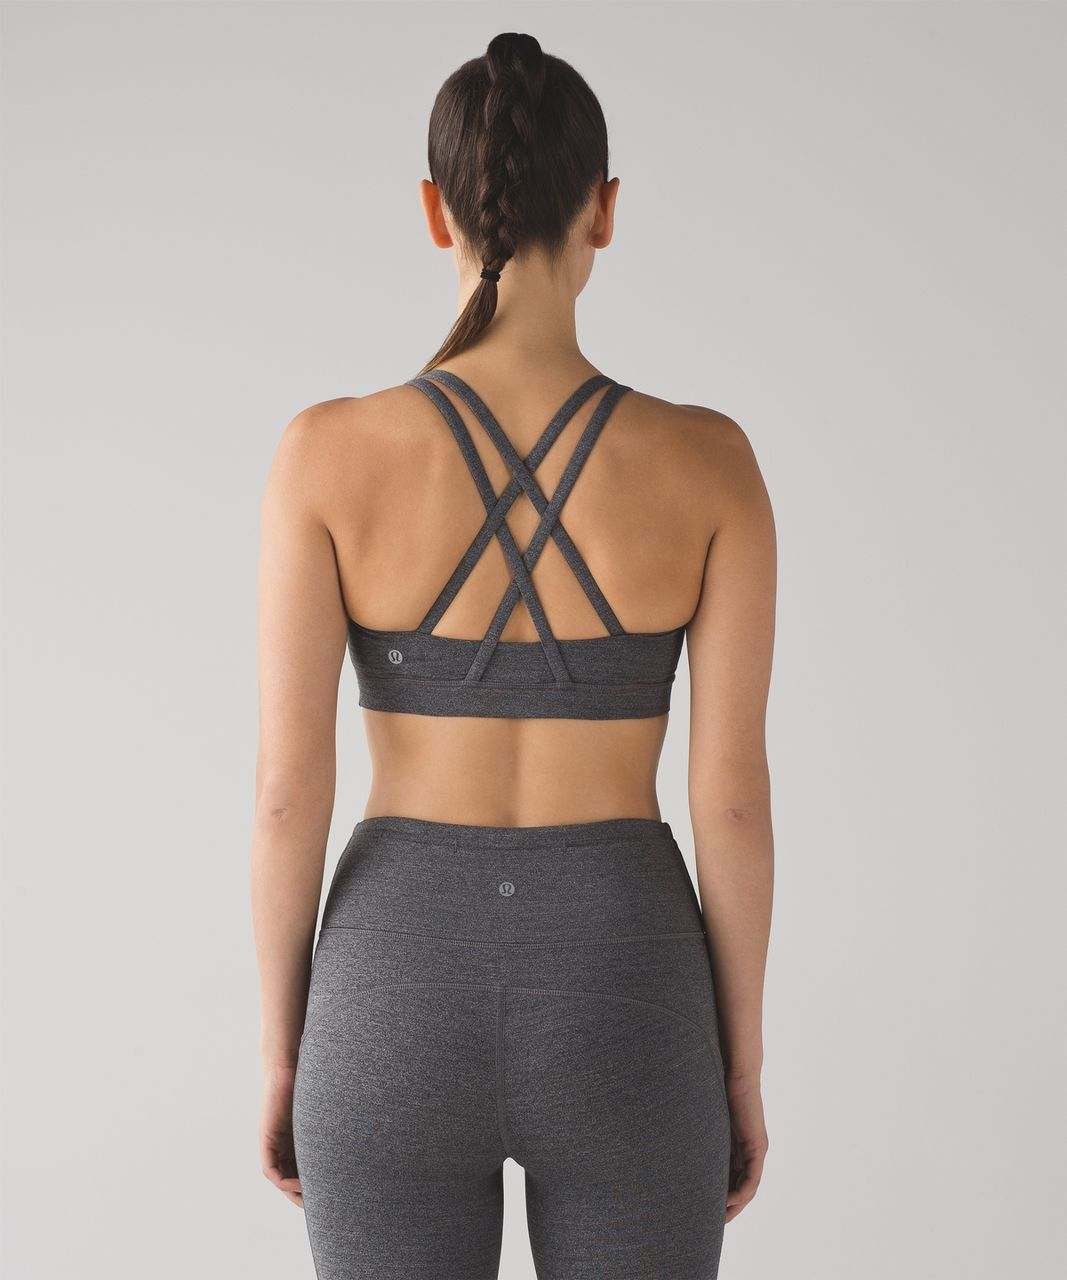 2beda1a91b Lululemon Energy Bra - Heathered Black - lulu fanatics